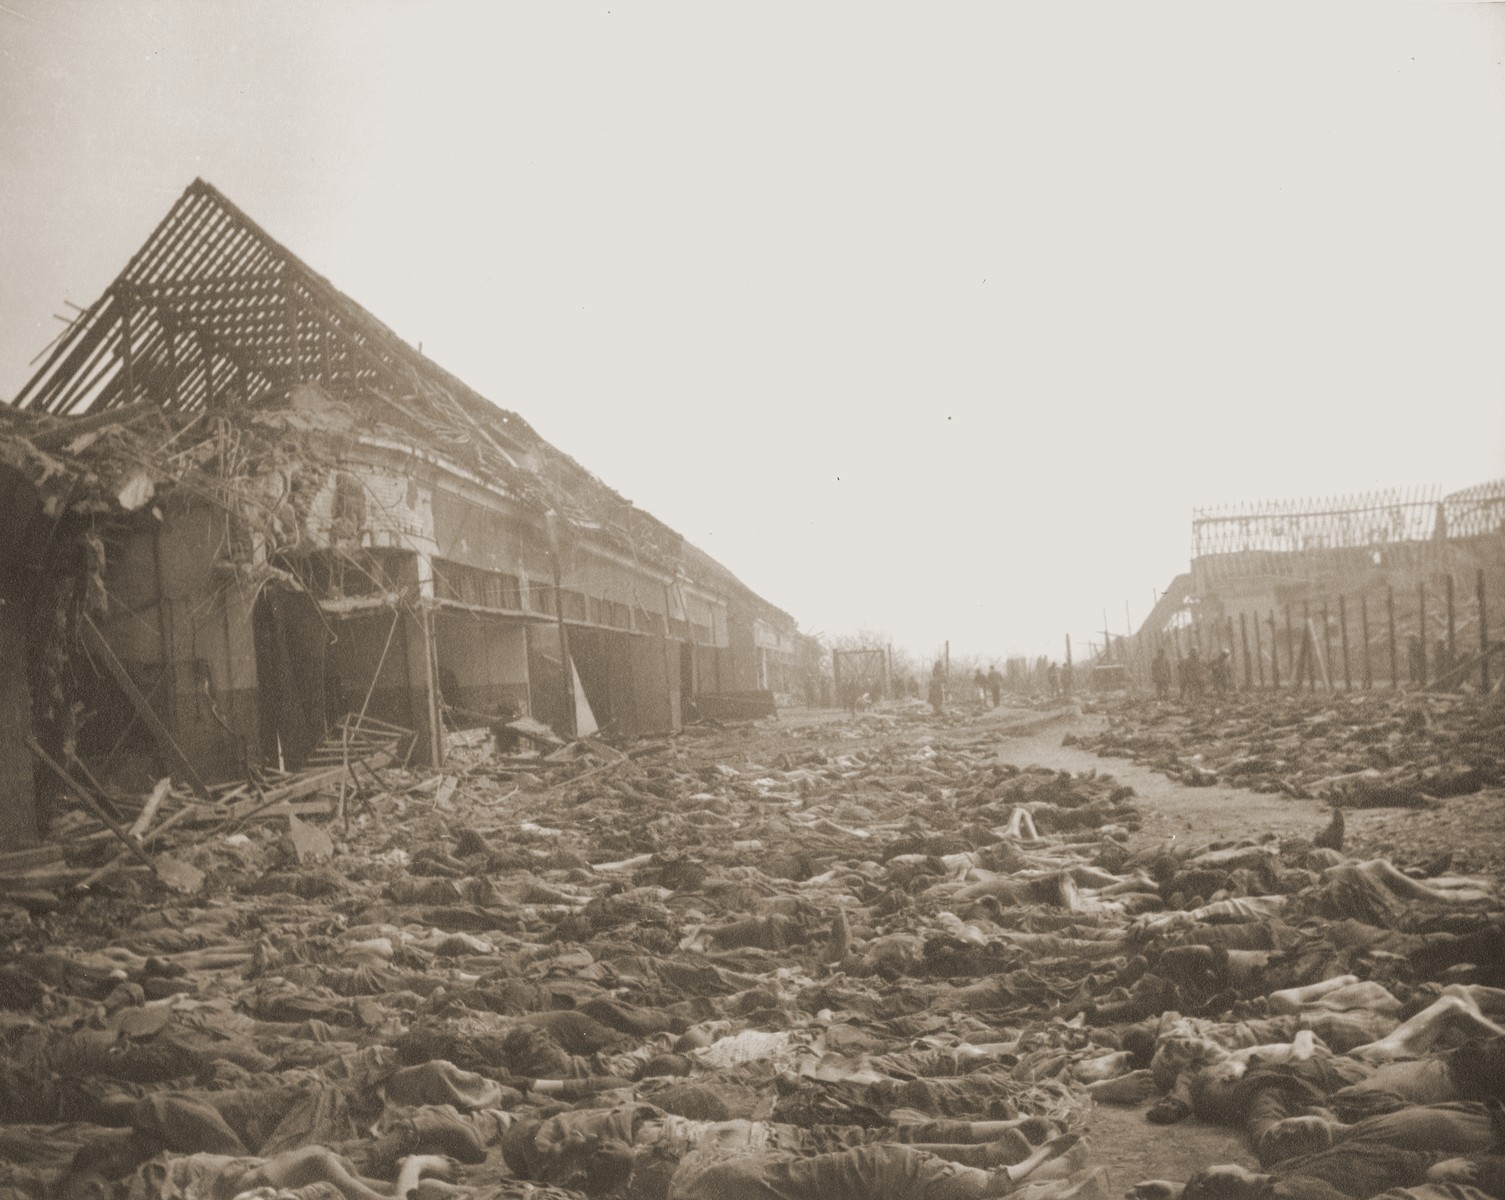 View of the main street of the Nordhausen concentration camp, outside of the central barracks (Boelke Kaserne), where the bodies of prisoners have been laid out in long rows.